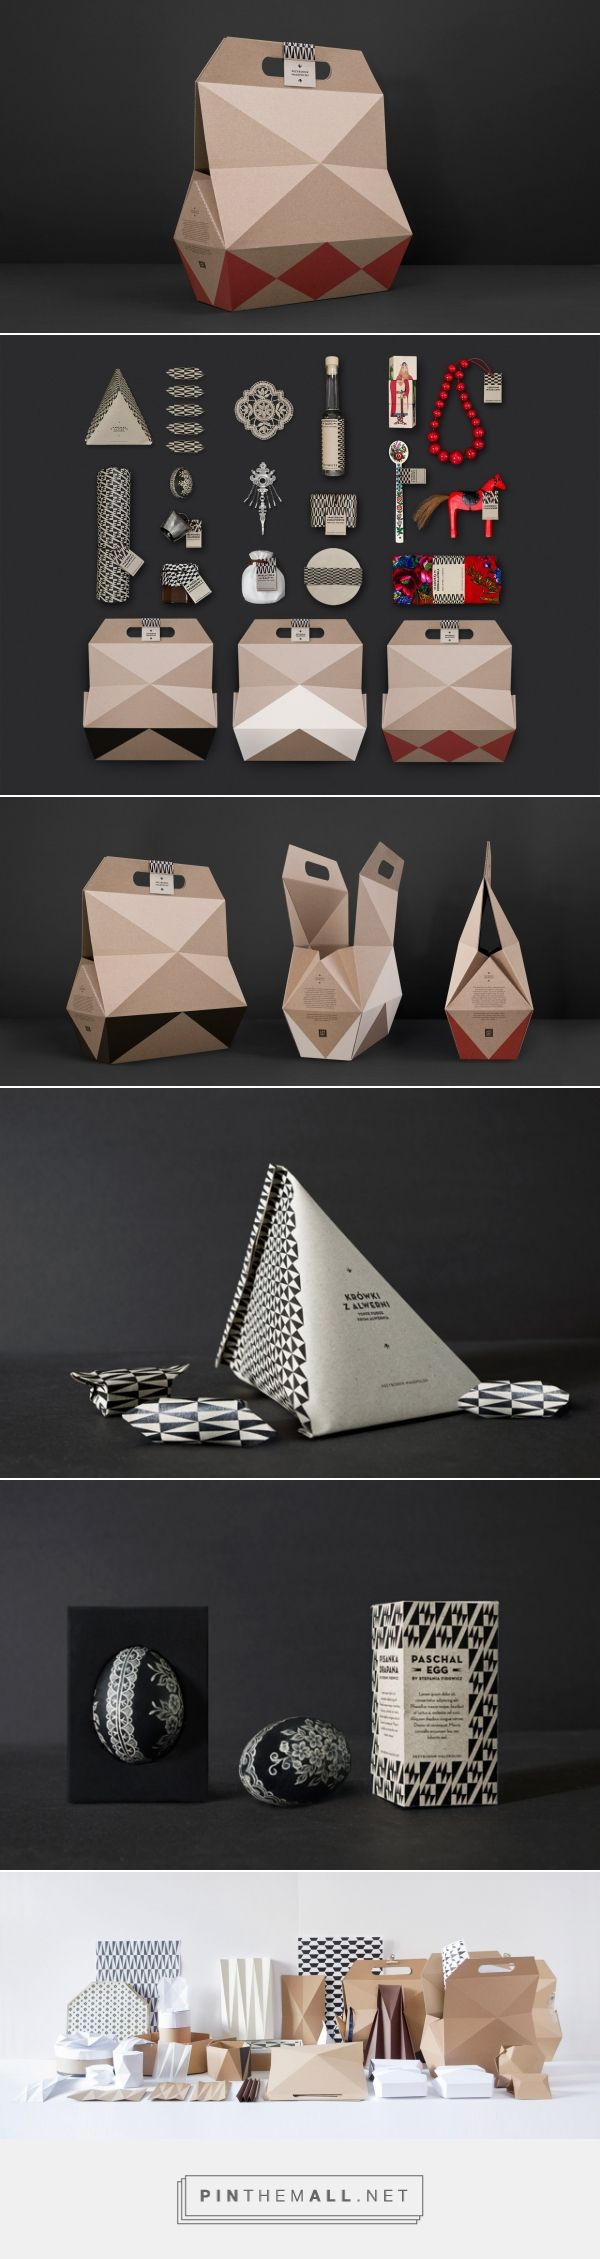 Zestawy upominkowe Przybornik Małopolski curated by Packaging Diva PD. Love this patterned design and packaging.